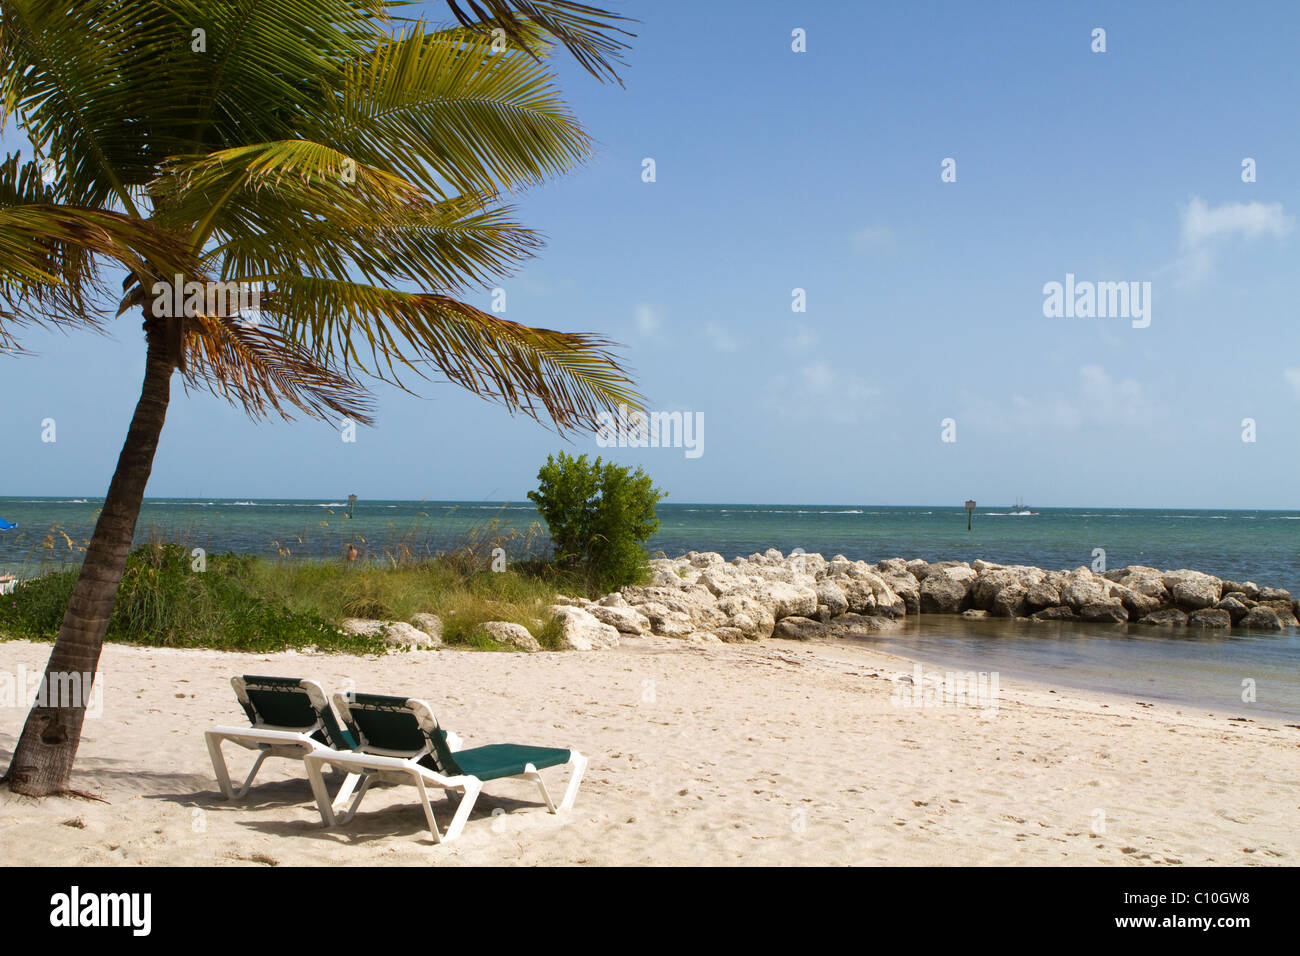 Two empty recliners sit invitingly under a palm tree on a sandy beach in Key West, Florida. - Stock Image